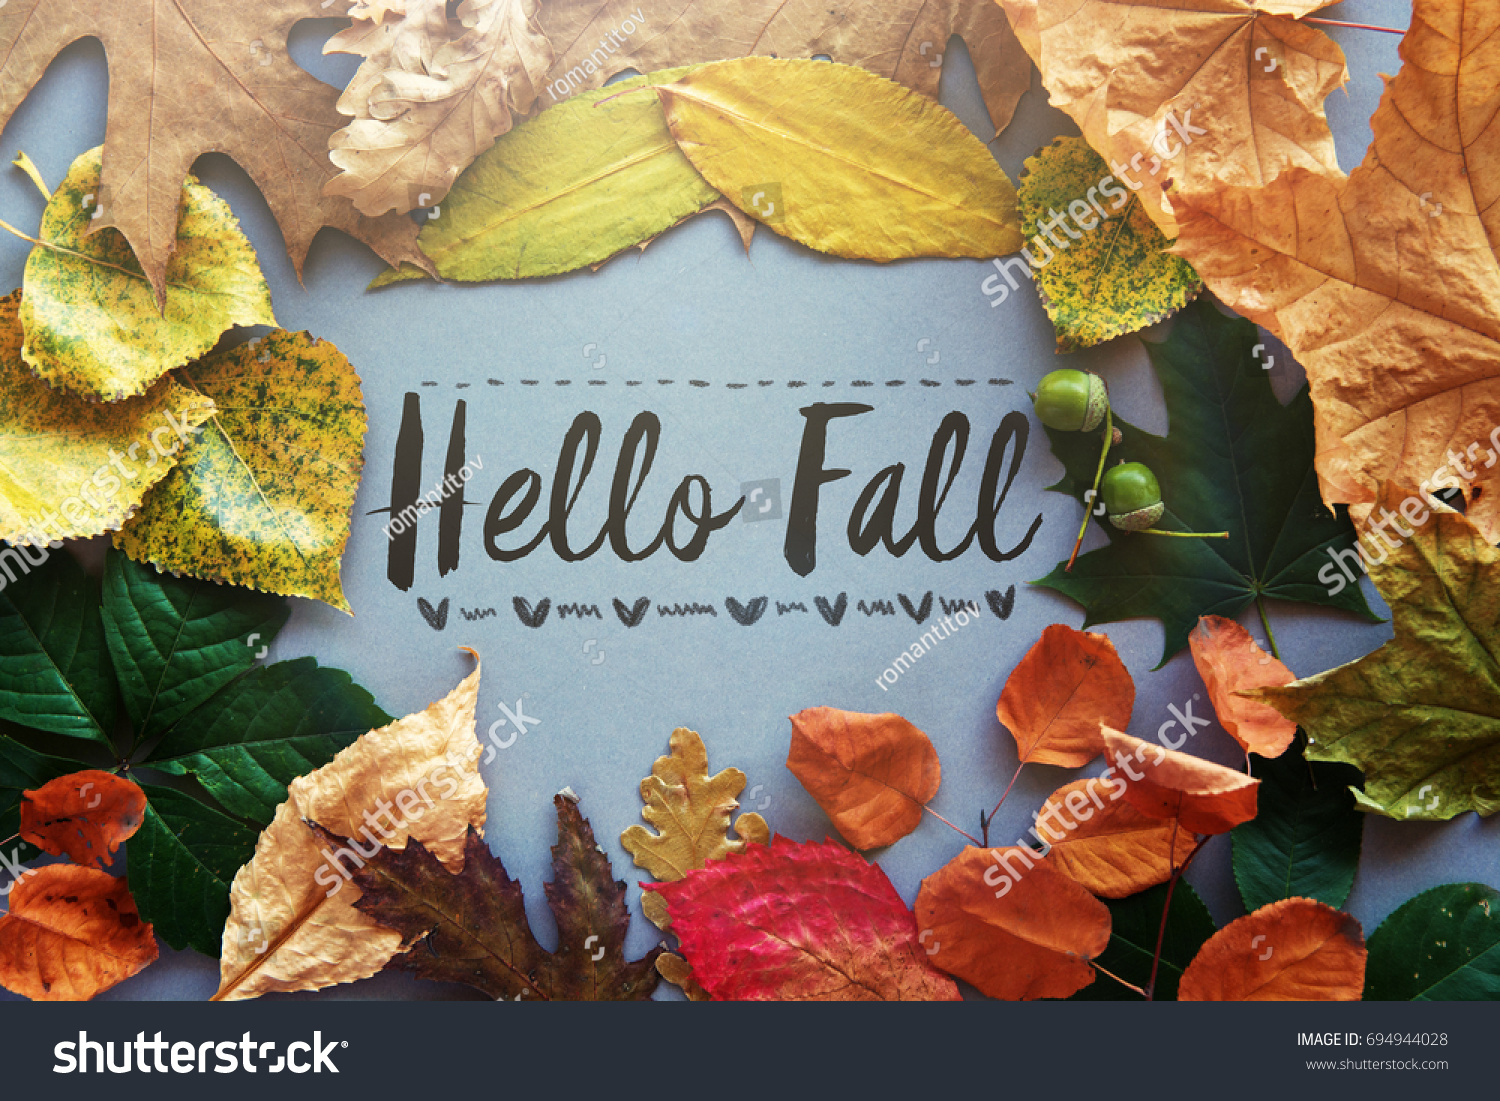 Great Hello Fall Card, Autumn Composition From Leaf. Vintage Forest Filter